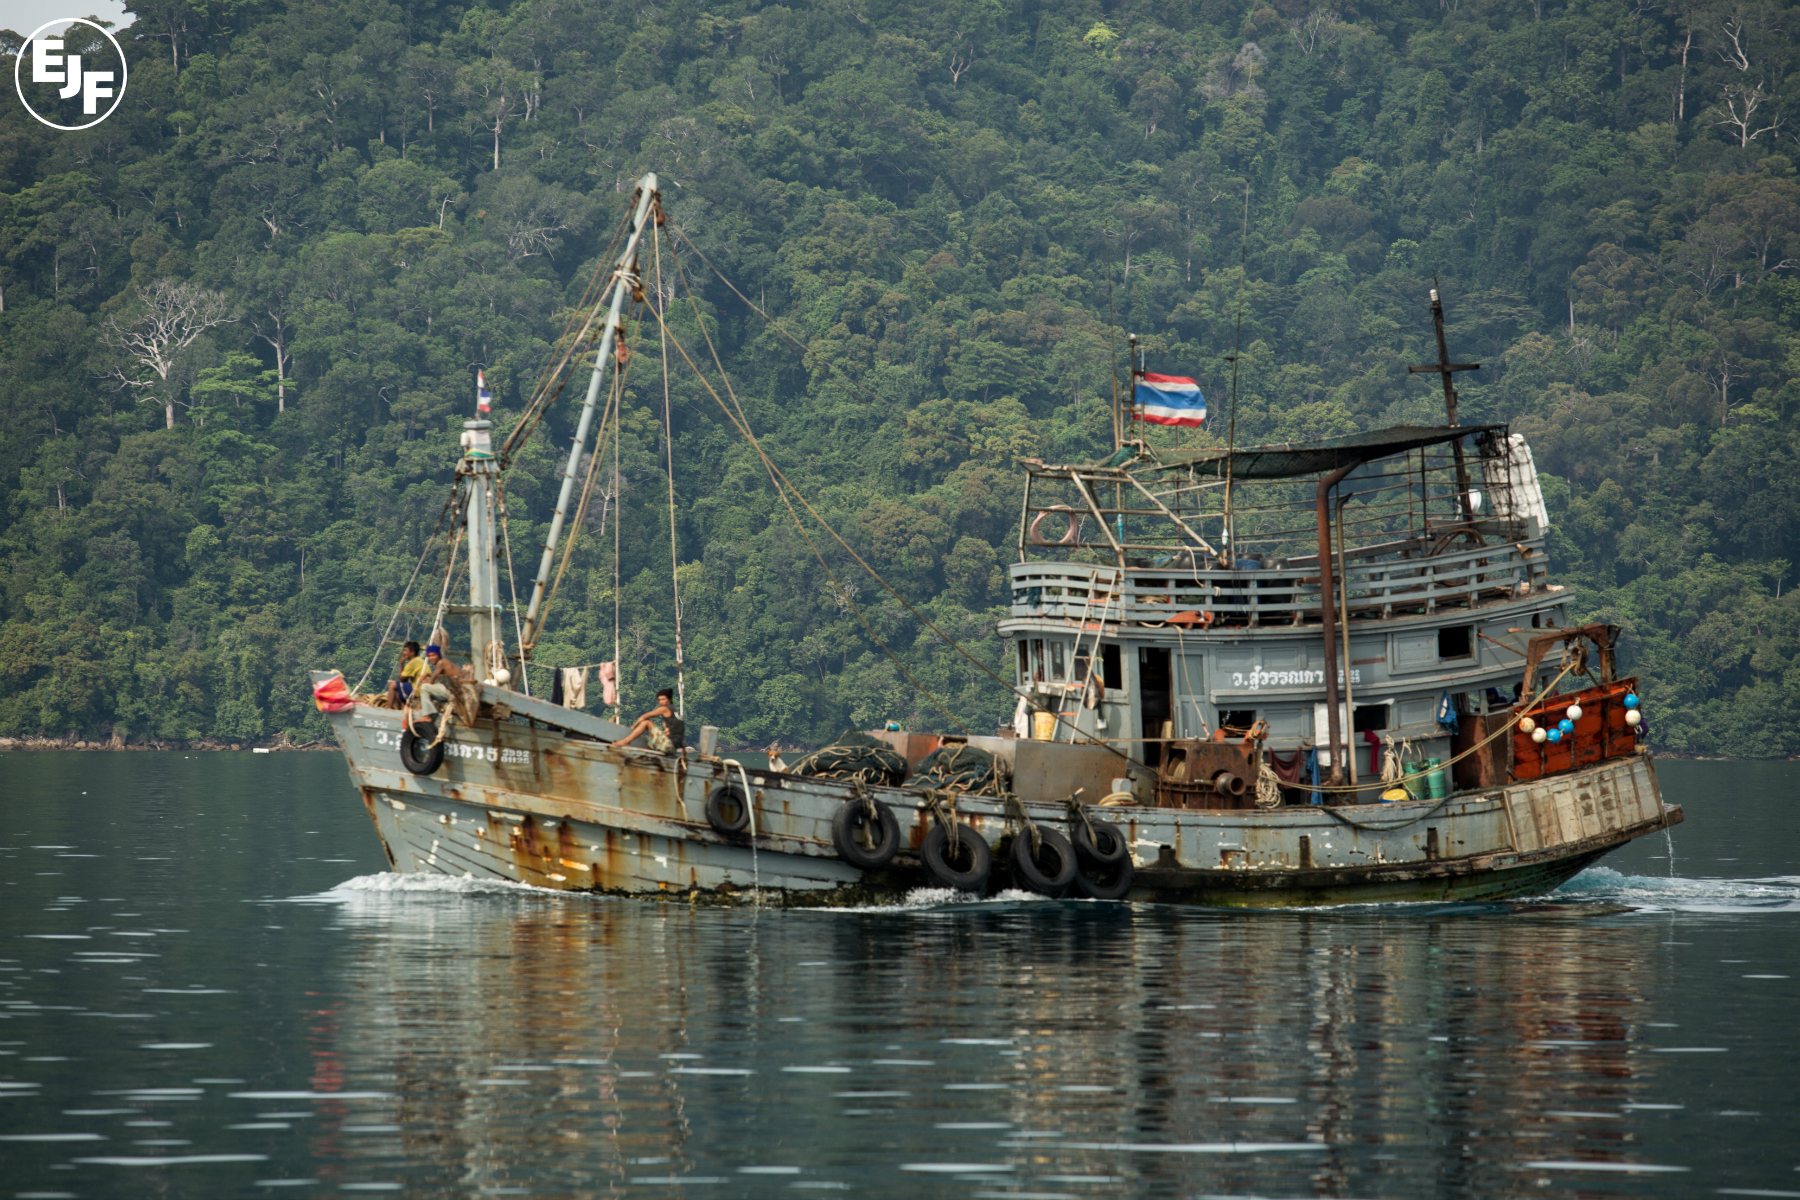 NGOs Support EU's Warning of Trade Ban Against Thailand for Illegal Fishing